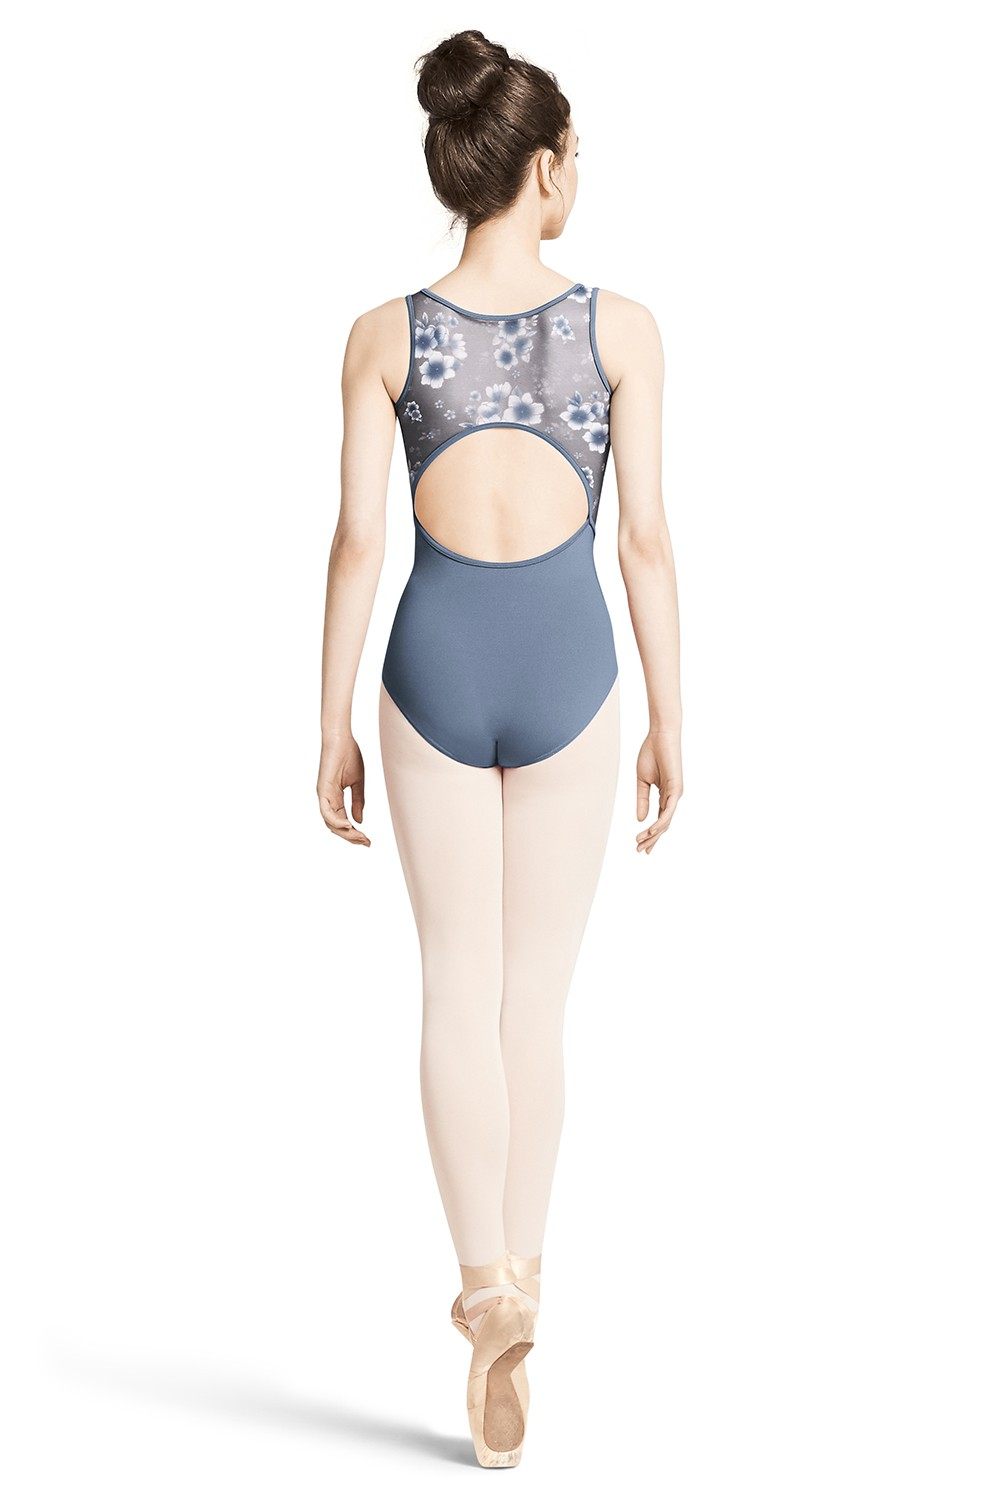 Keyhole Back Tank - Tween Children's Dance Leotards